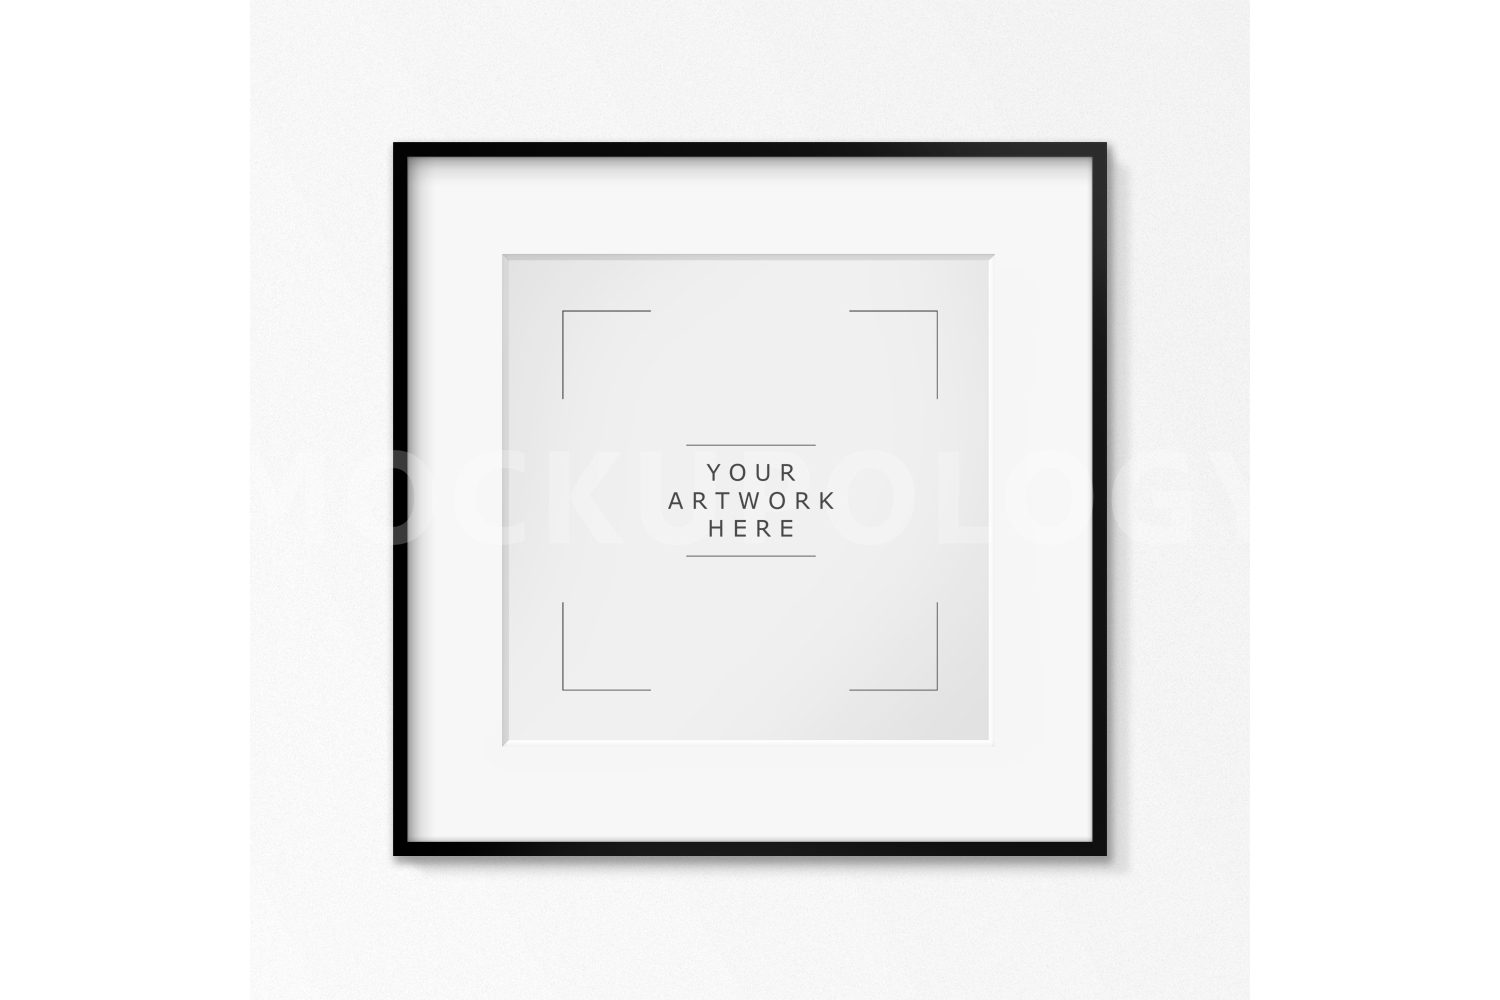 SQUARE Digital Black Frame Mockup, Whit | Design Bundles